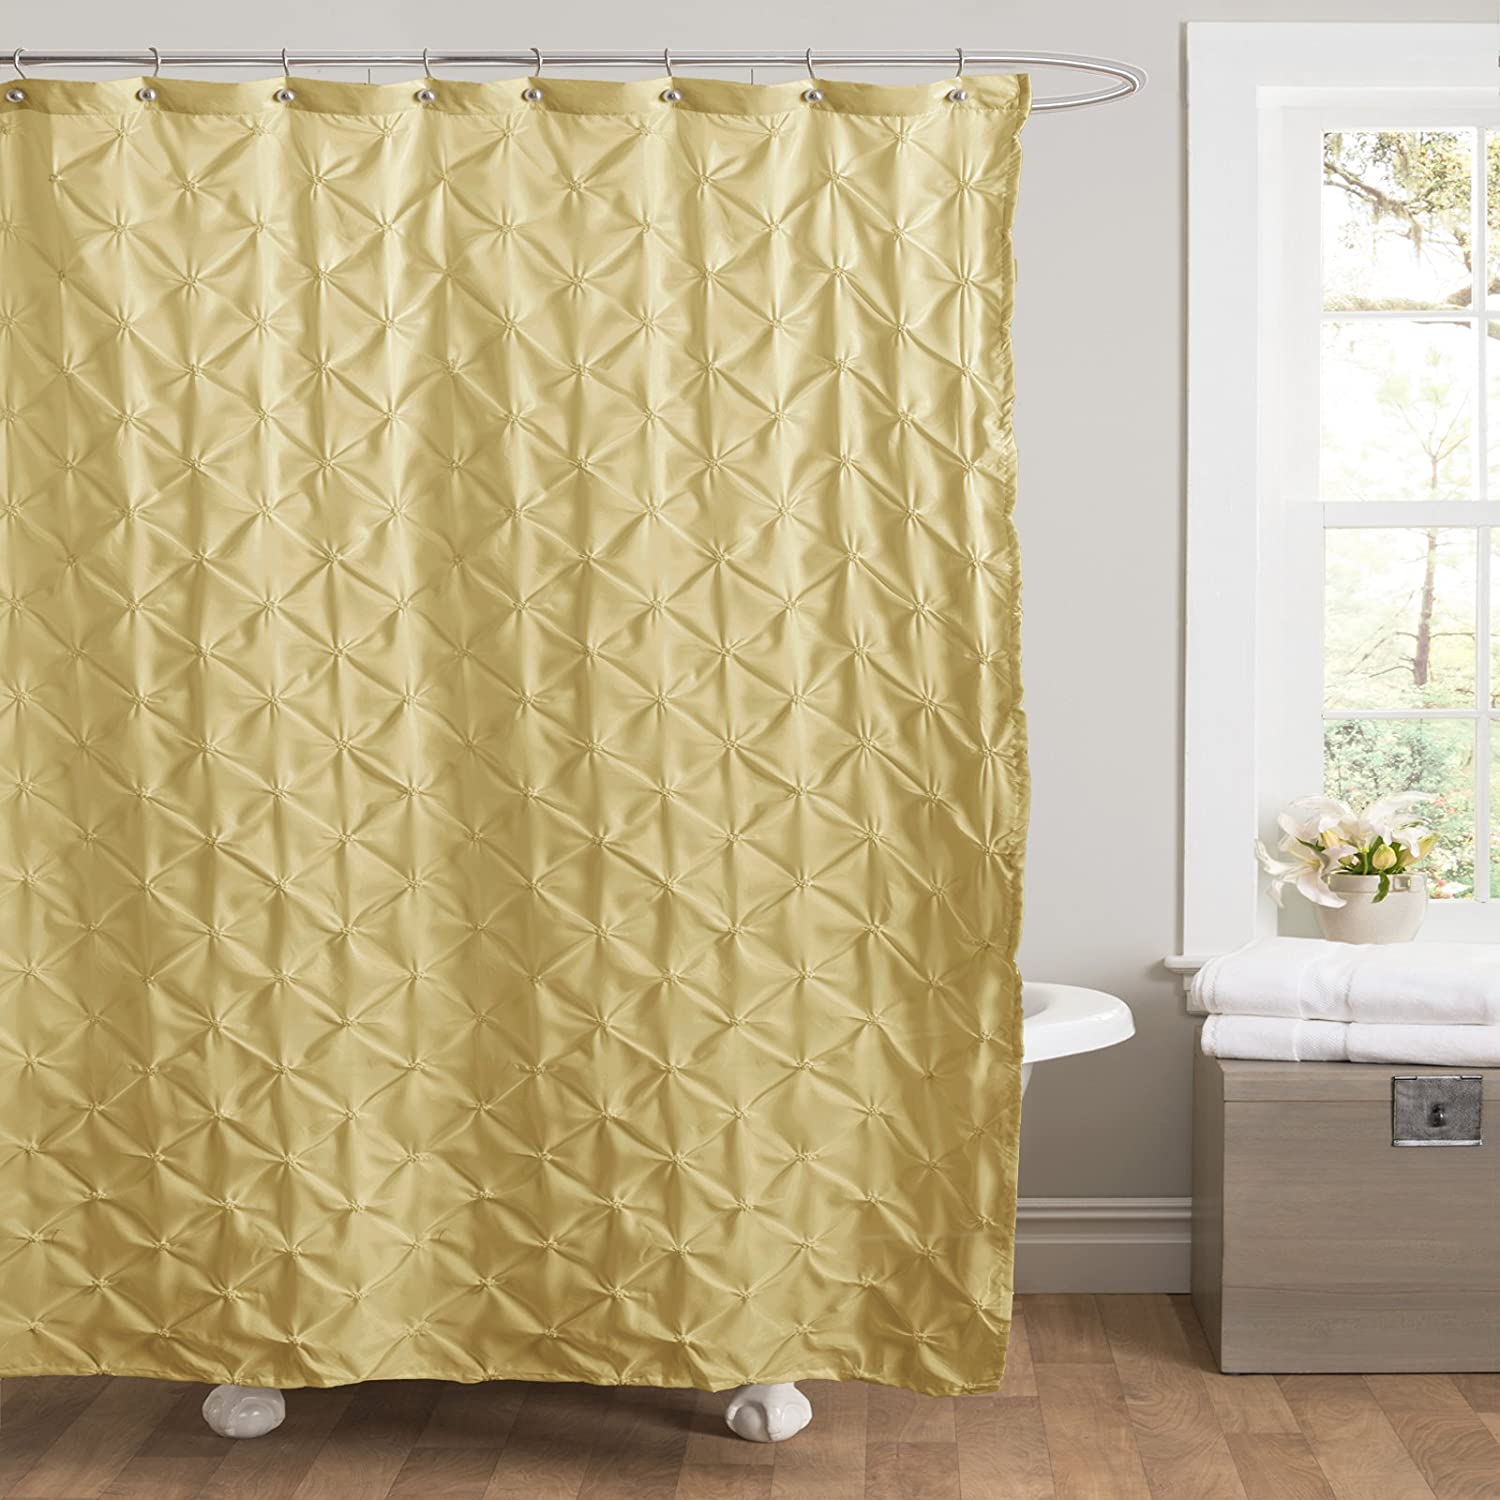 Amazon Lush Decor Lake Como Shower Curtain 72 By Inch Yellow Home Kitchen